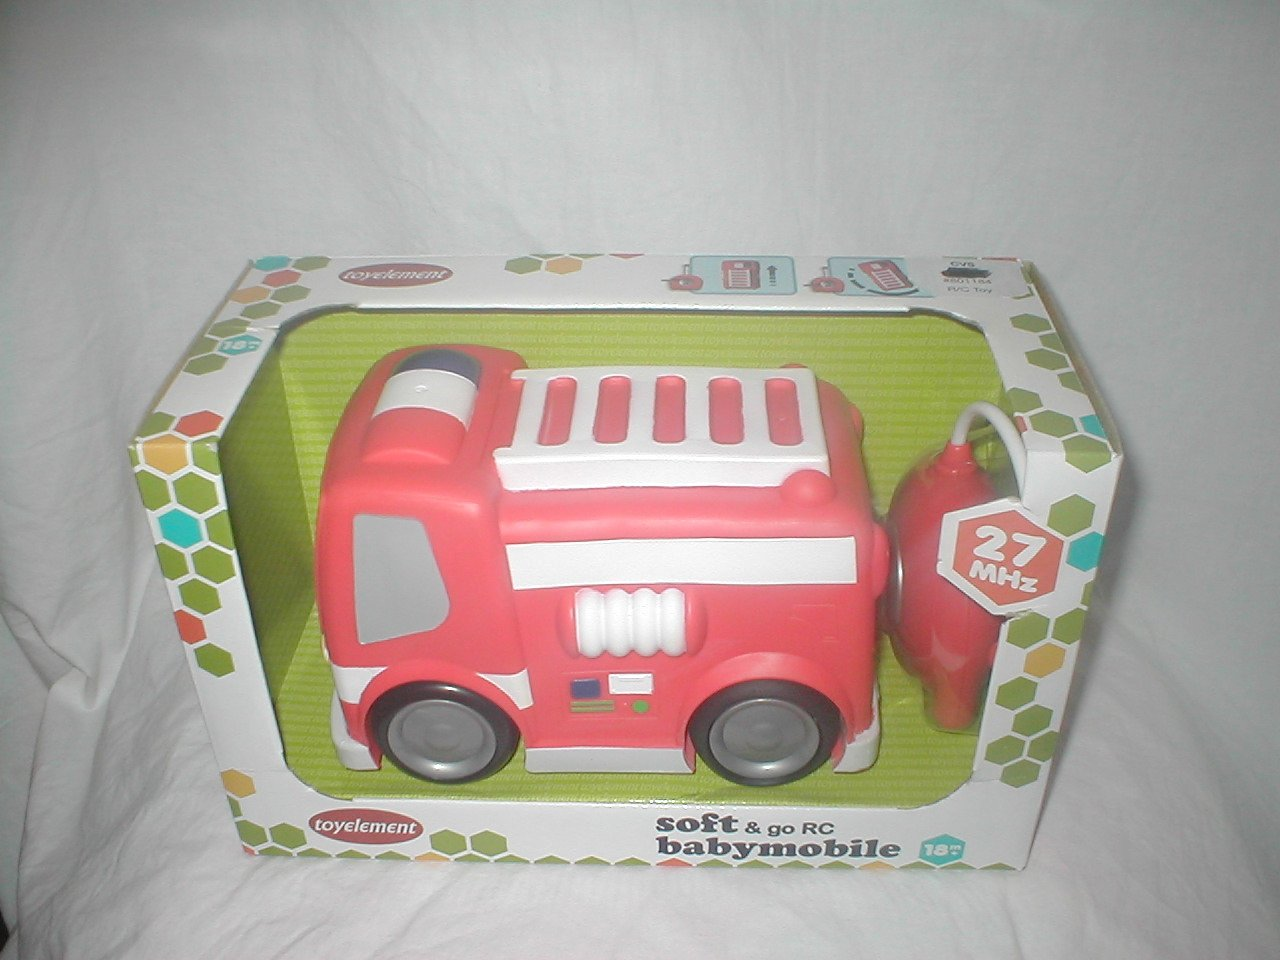 Get Quotations Toy Element Soft Go Rc Babymobile Fire Truck In Bright Red With Remote